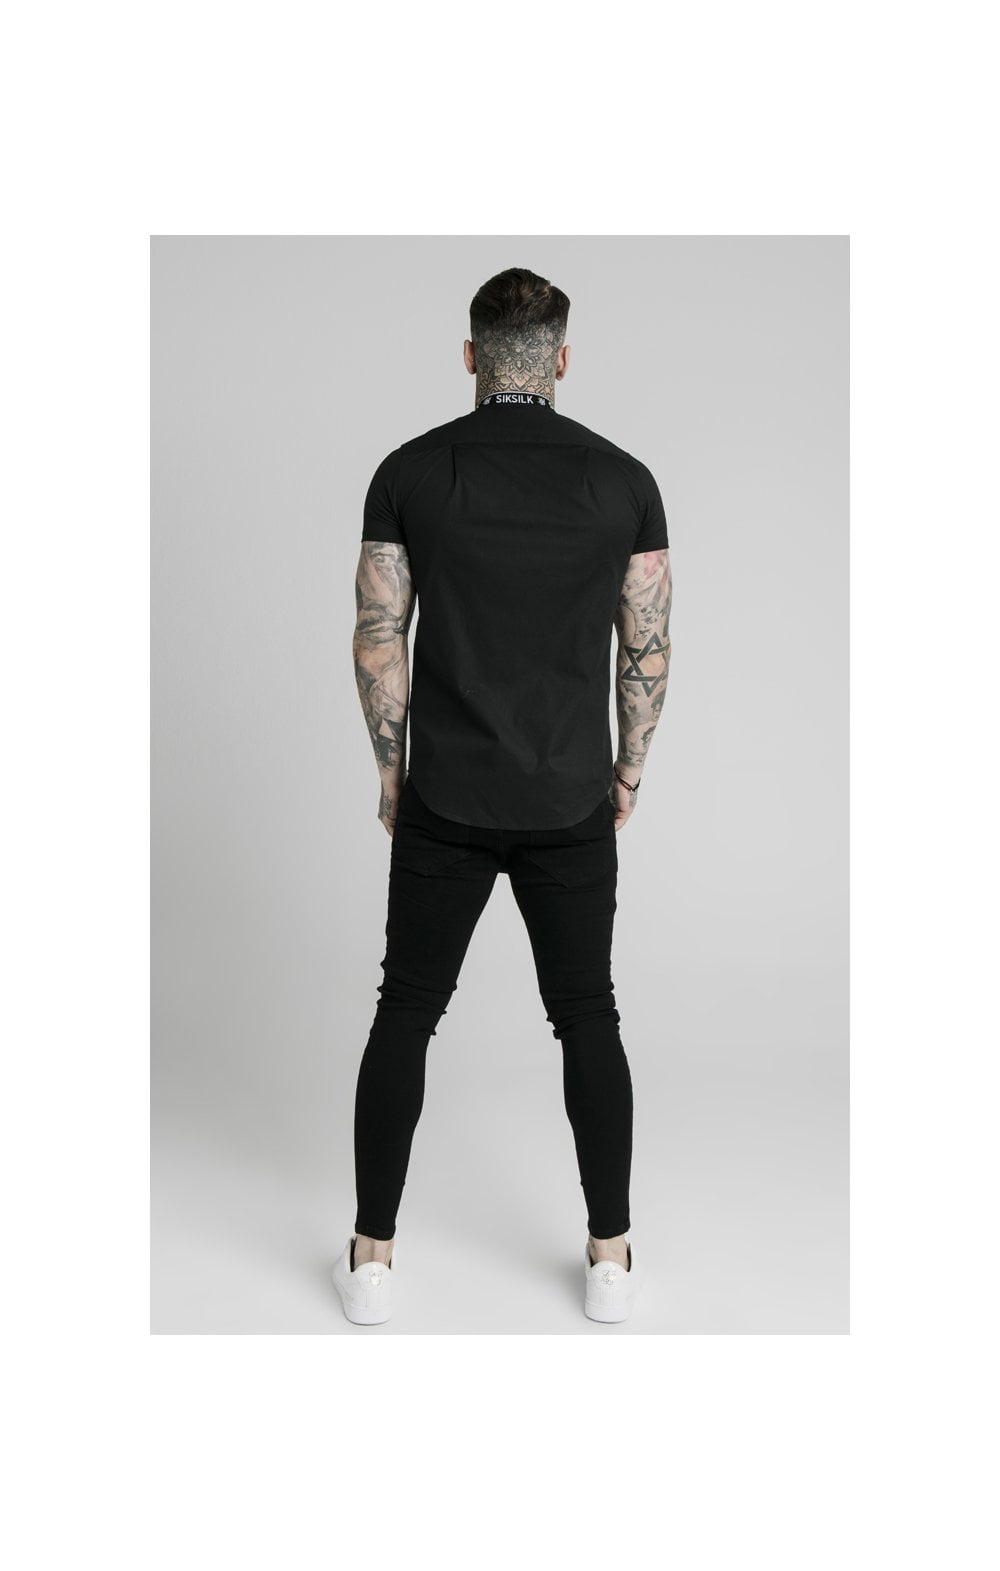 SikSilk S/S Tape Collar Shirt - Black (4)